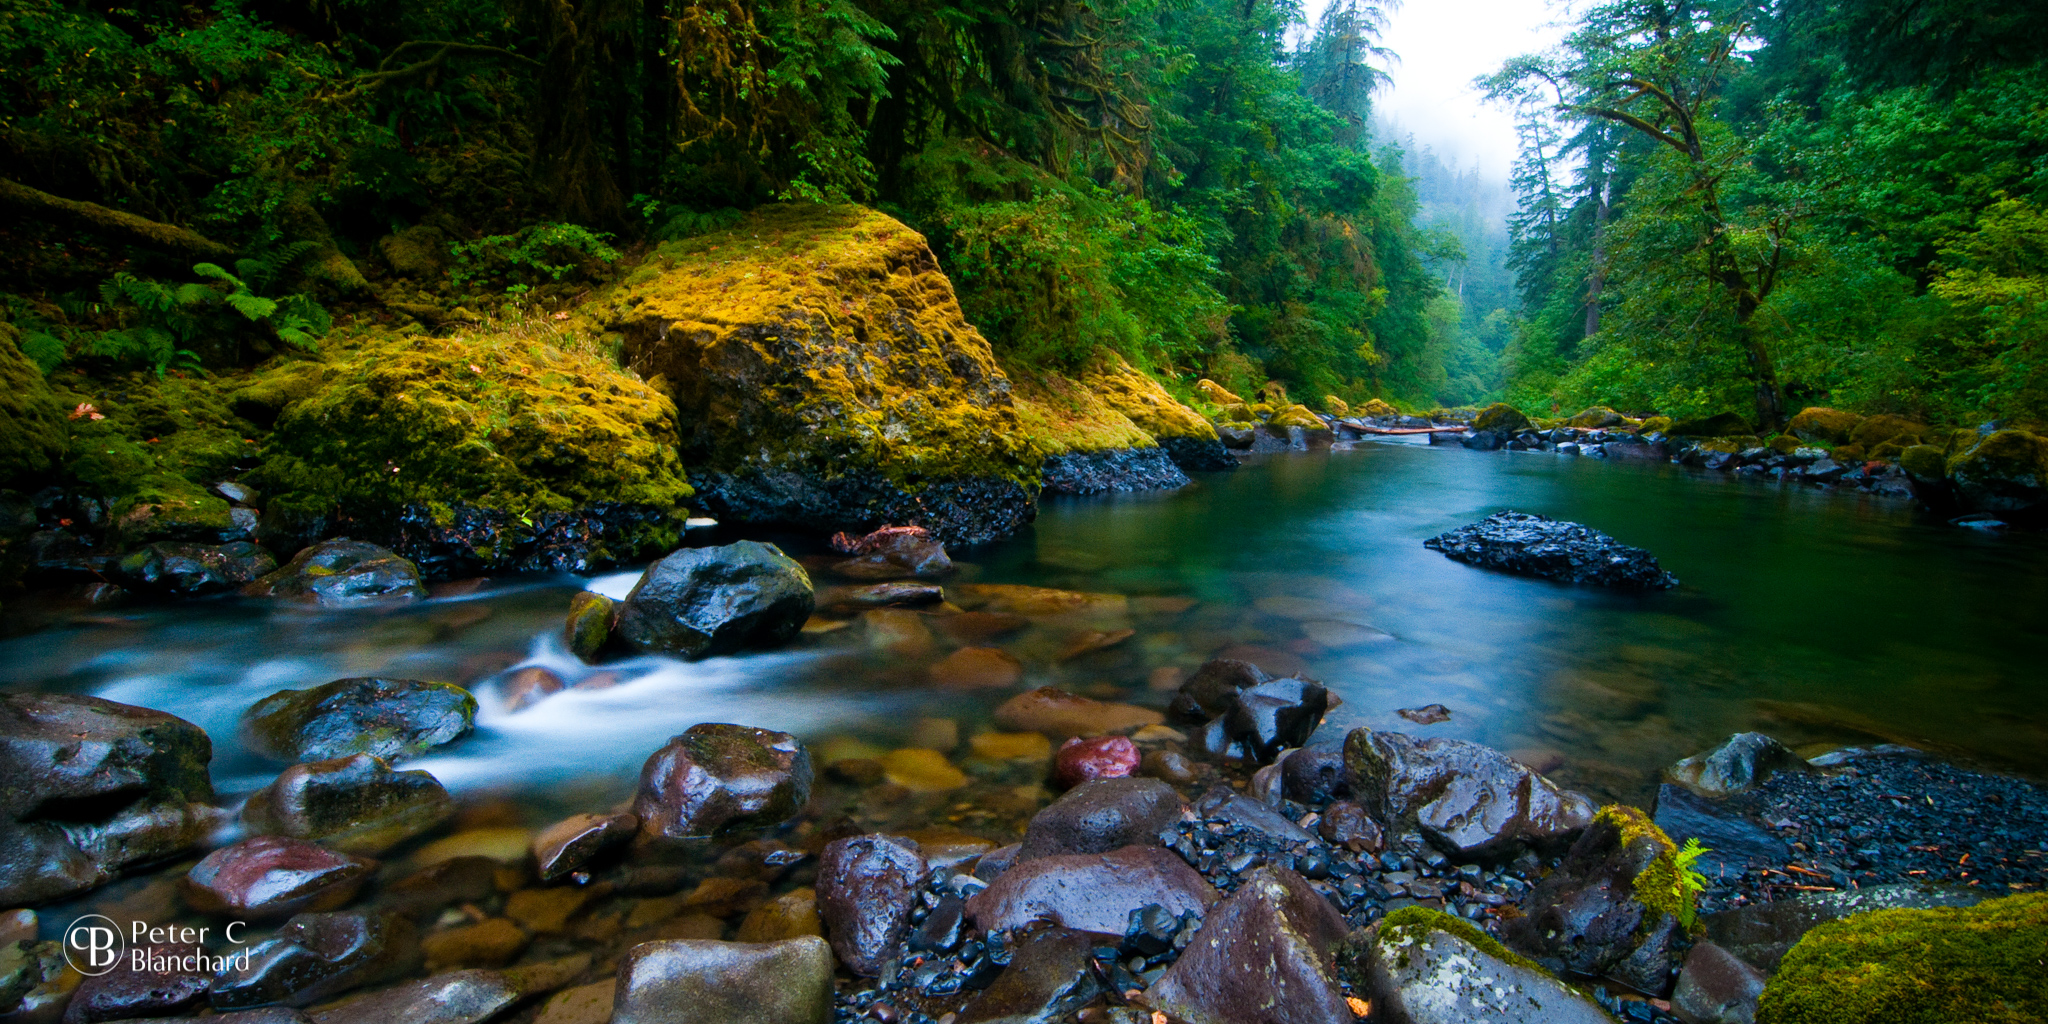 Eagle Creek, in the Columbia River Gorge. This is where the fire started when two young men threw fireworks over a cliff.